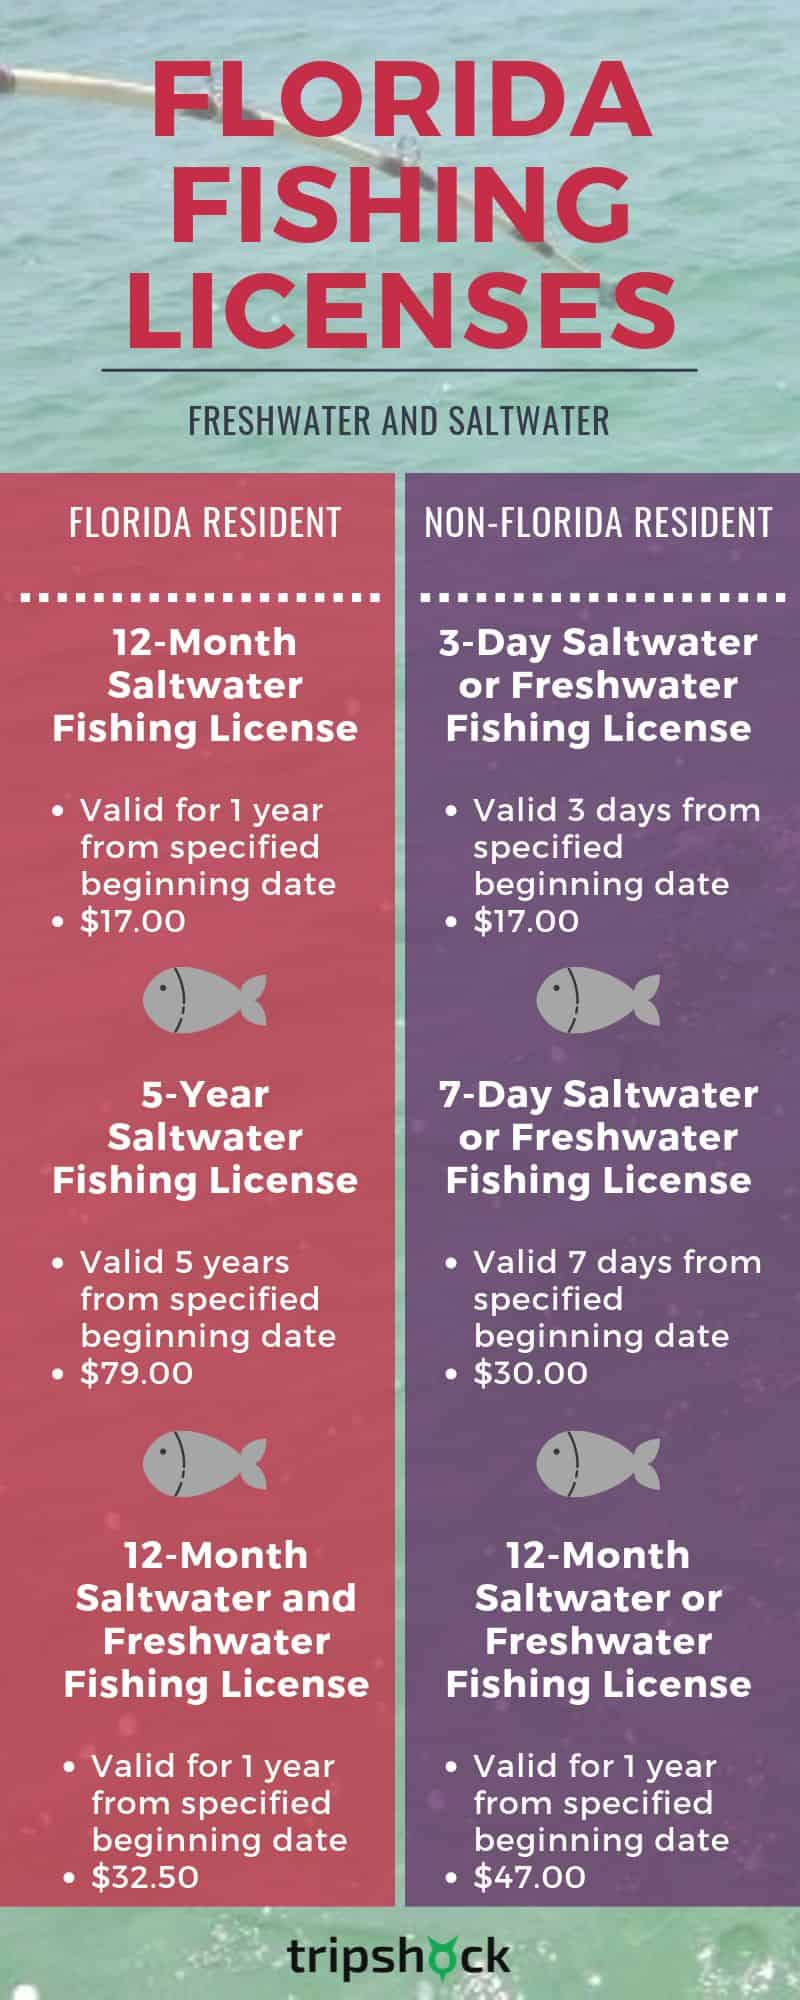 saltwater and freshwater fishing license prices and information